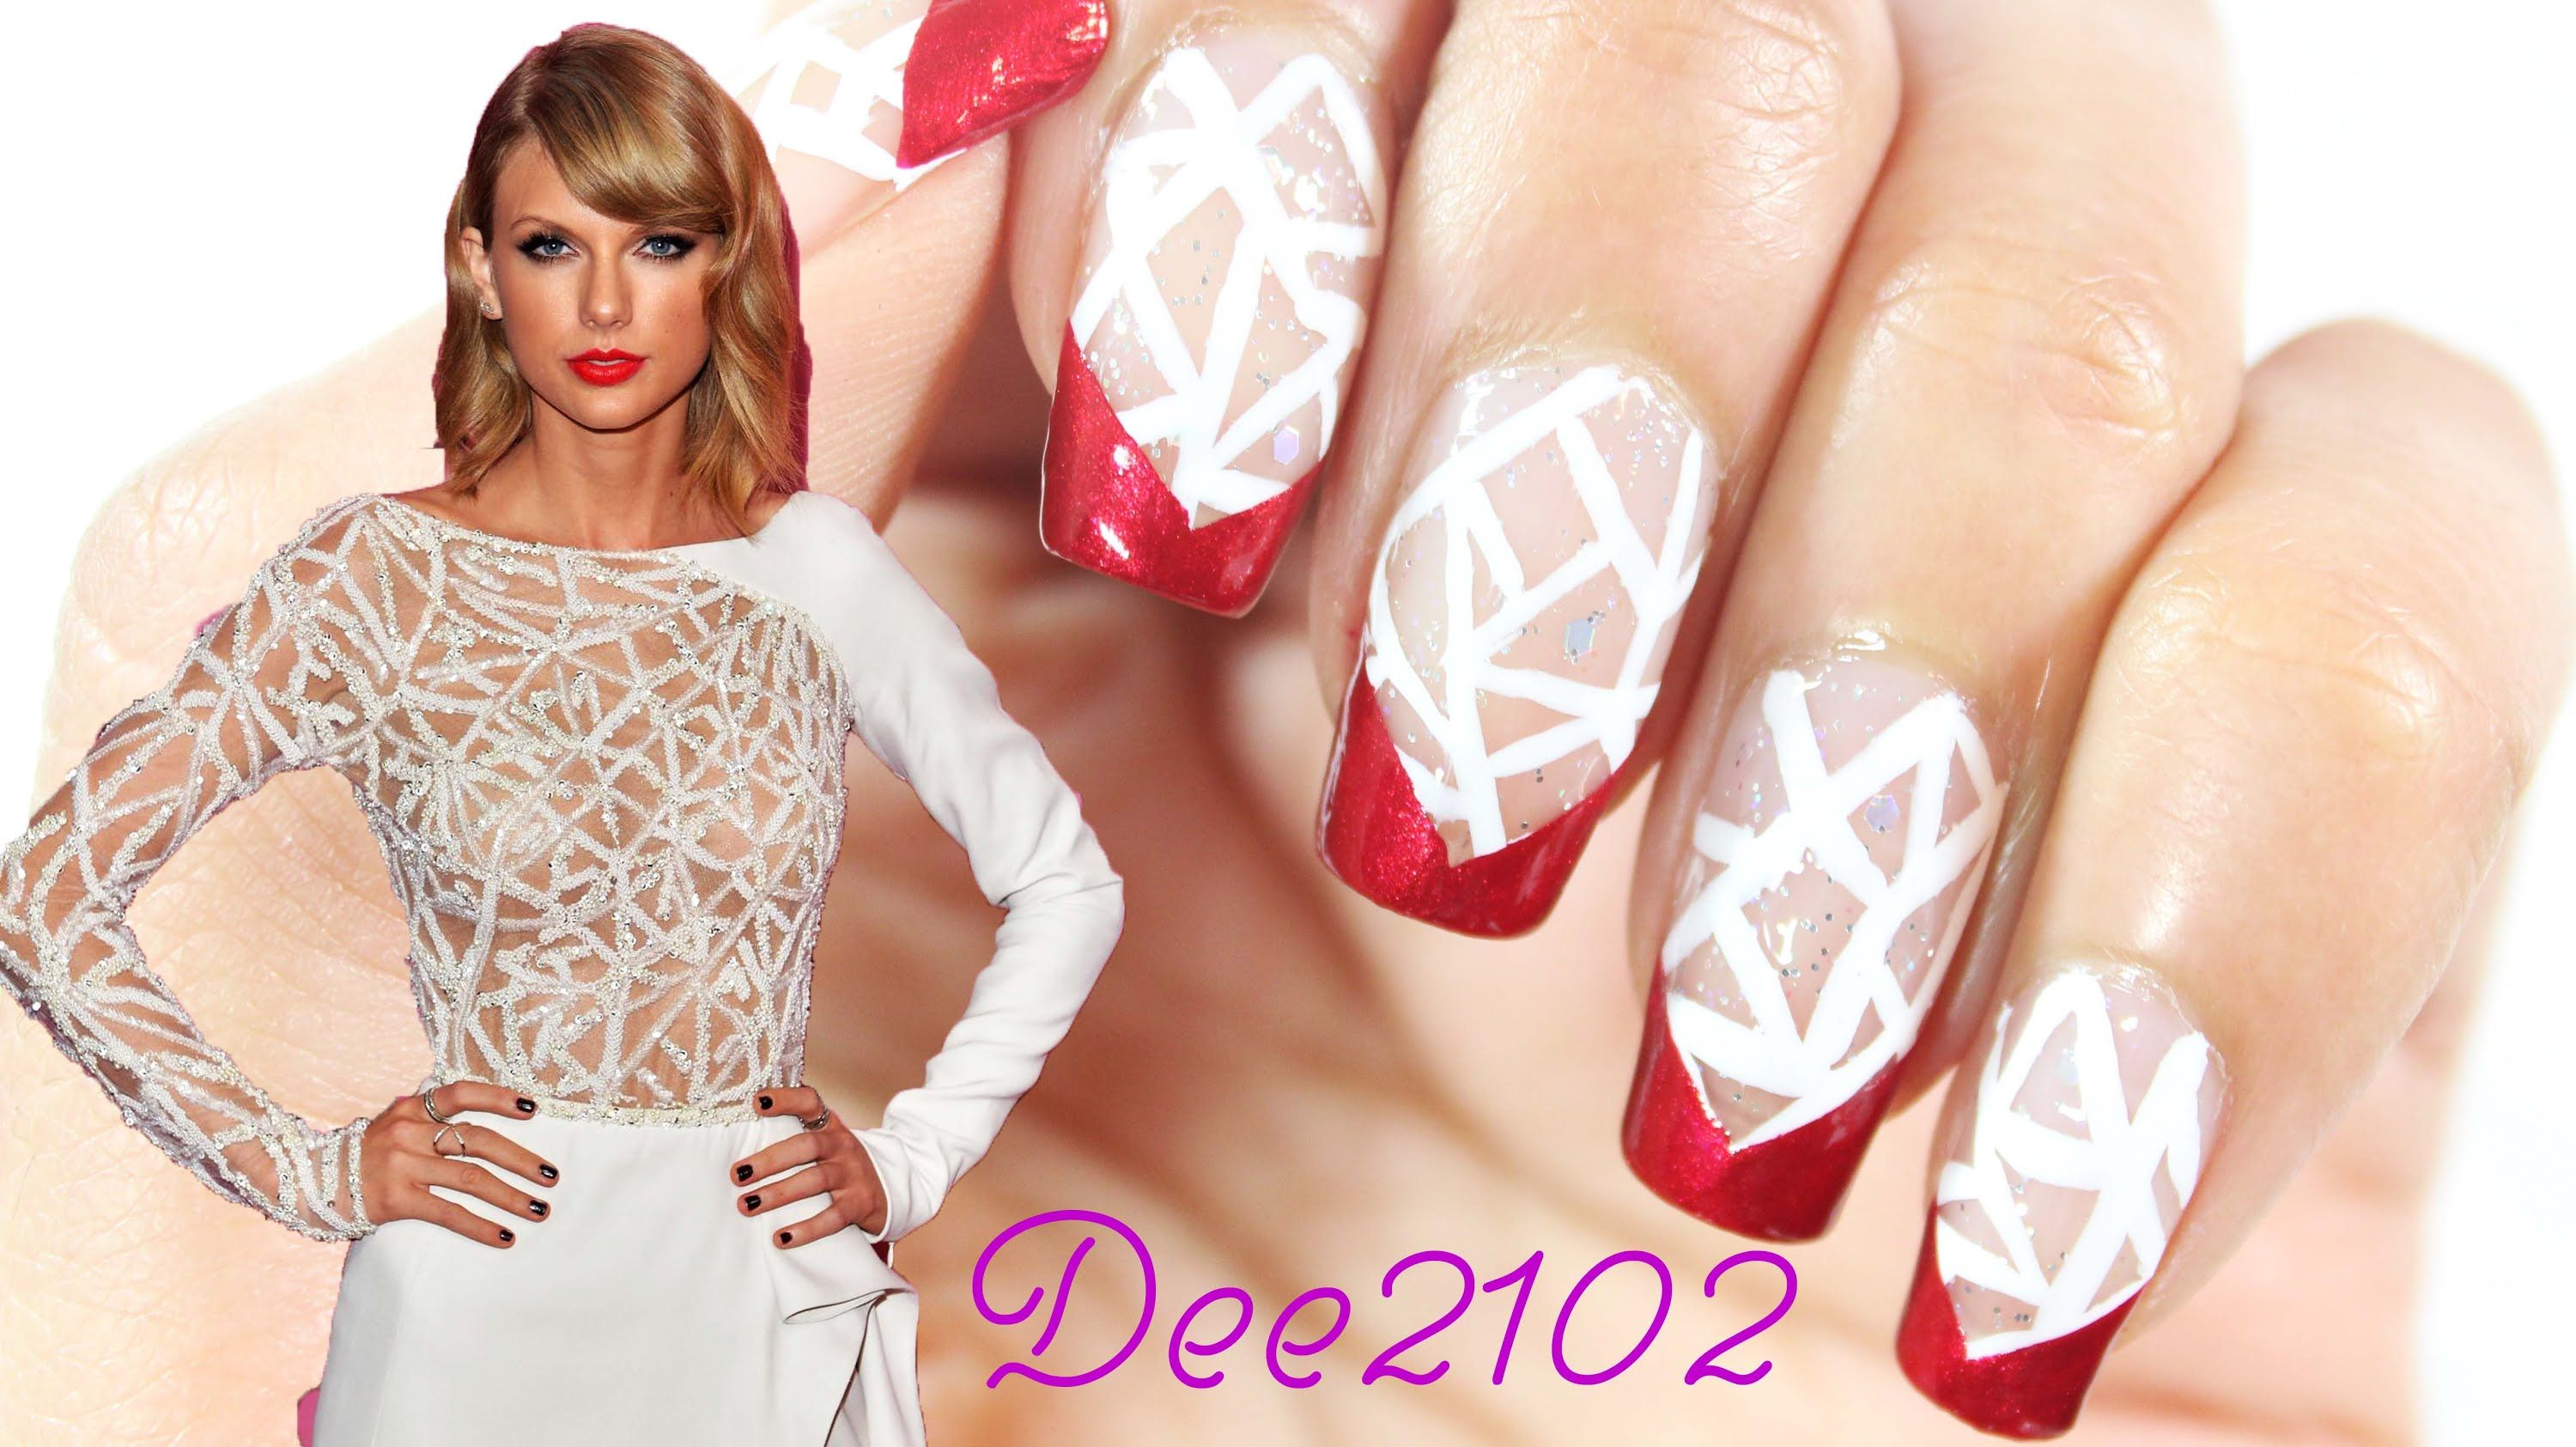 Taylor Swift Inspired Nails The gorgeous print on her dress